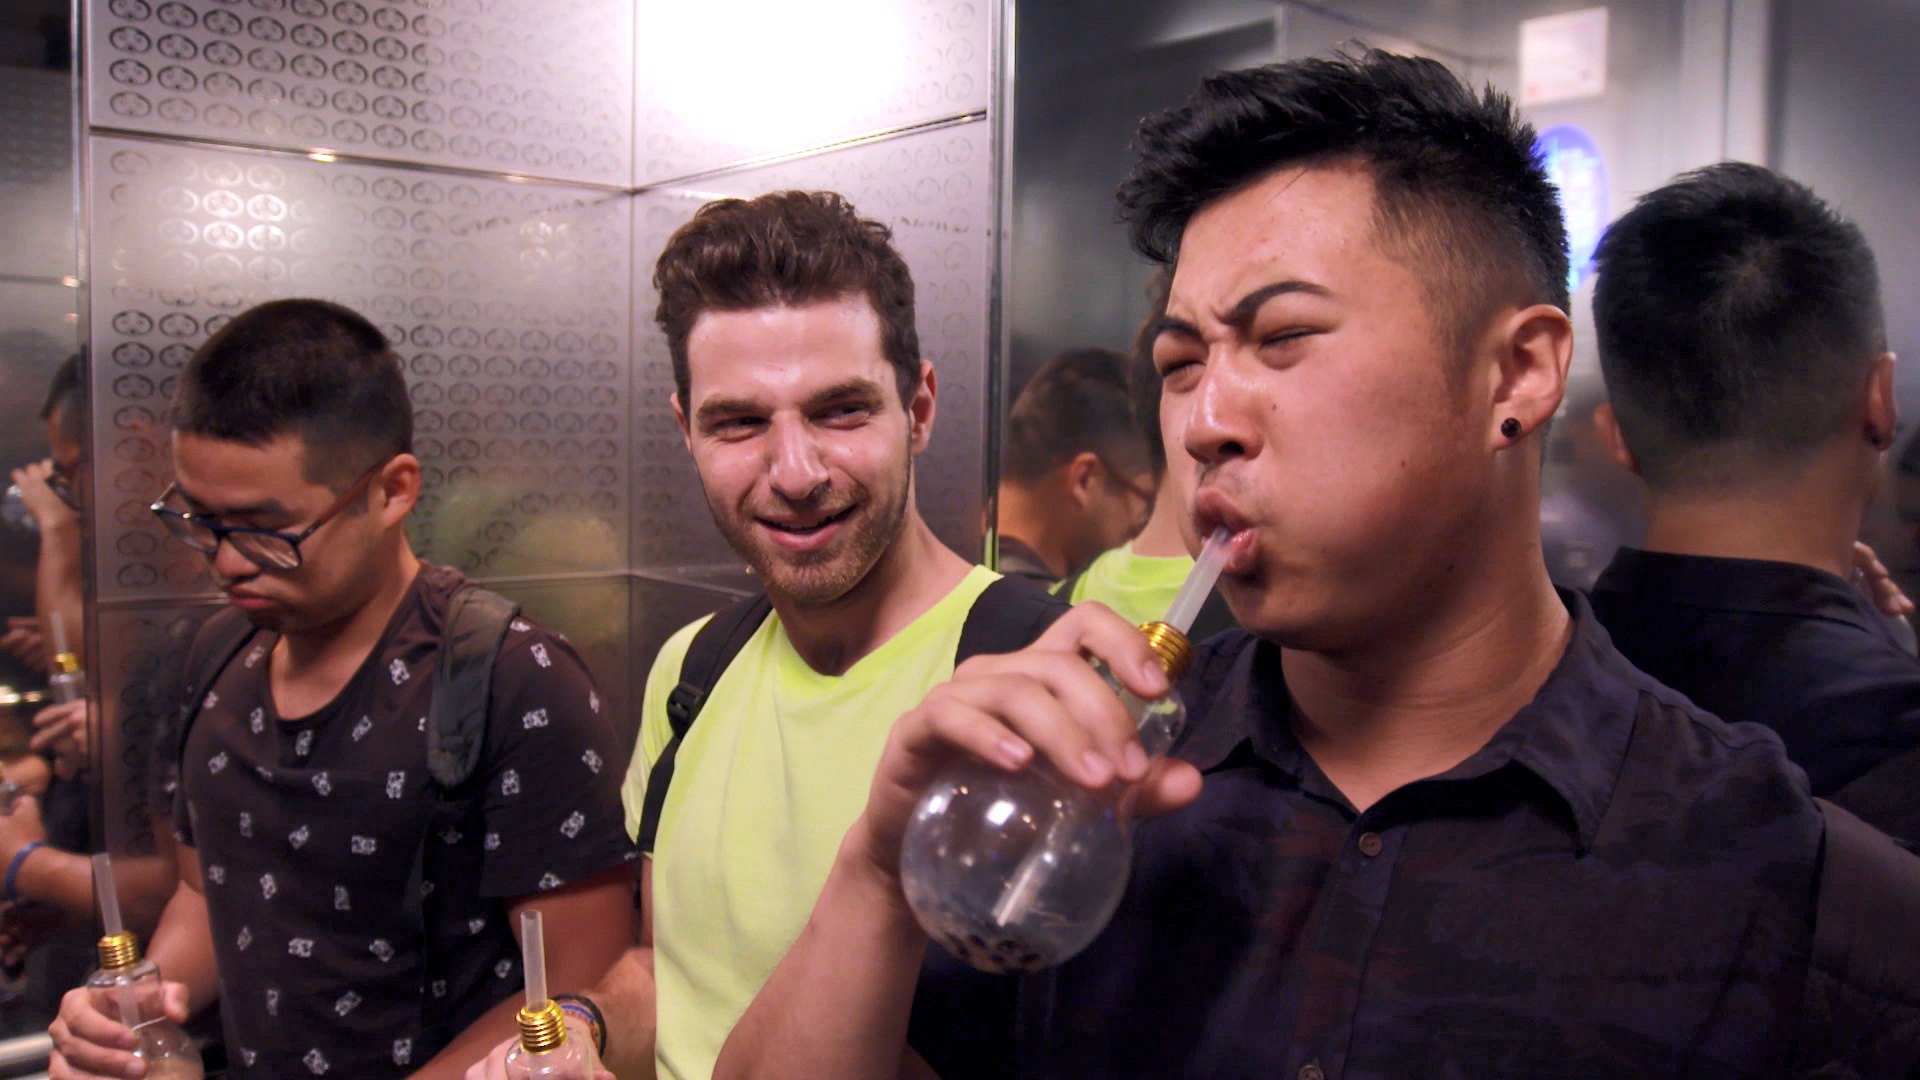 Target boys left traumatised by bubble tea